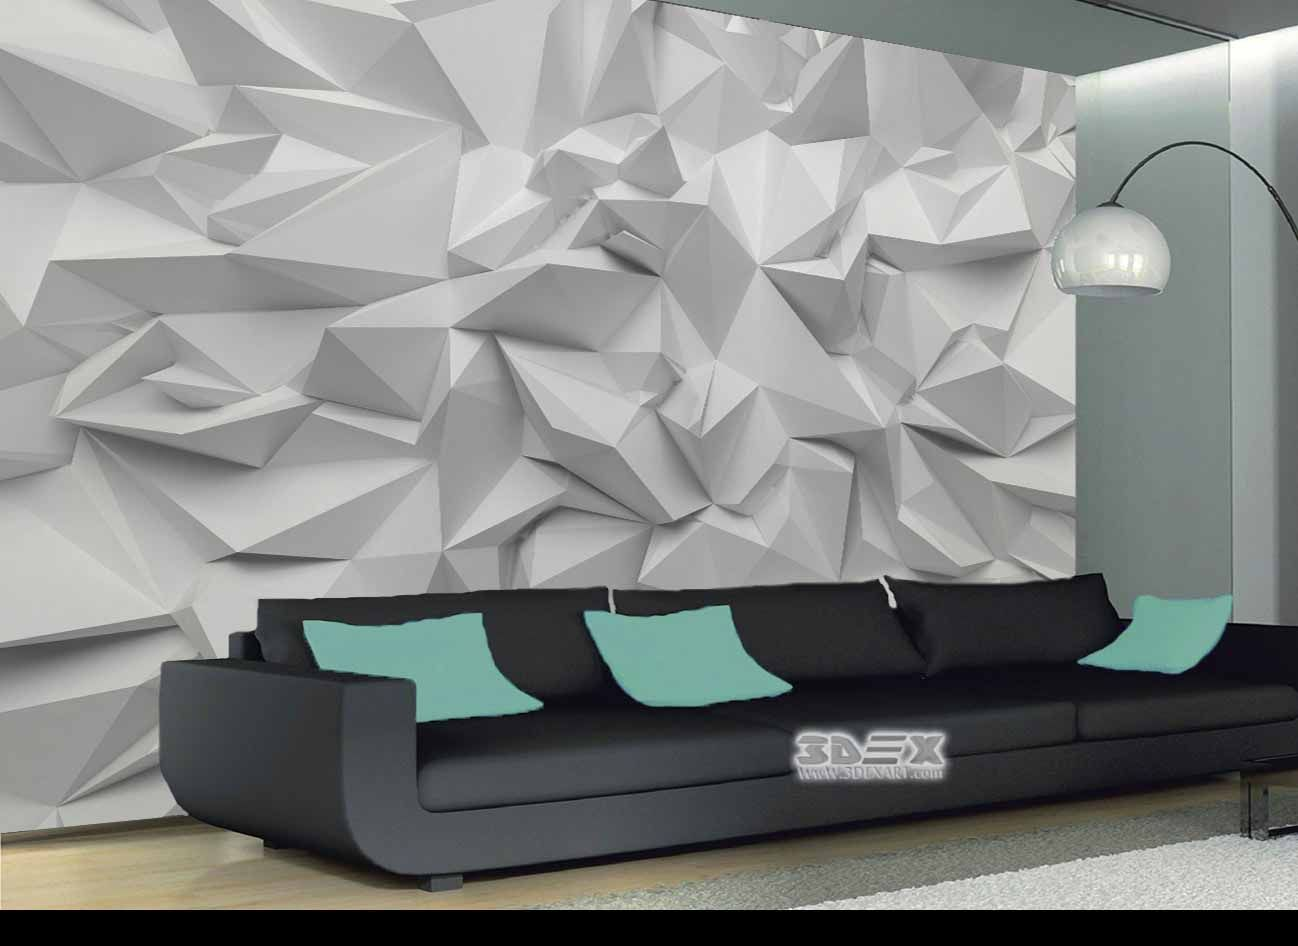 Black and white 3d wallpaper designs for living room walls new options and ideas to decorate your interior with 3d wallpaper for home walls